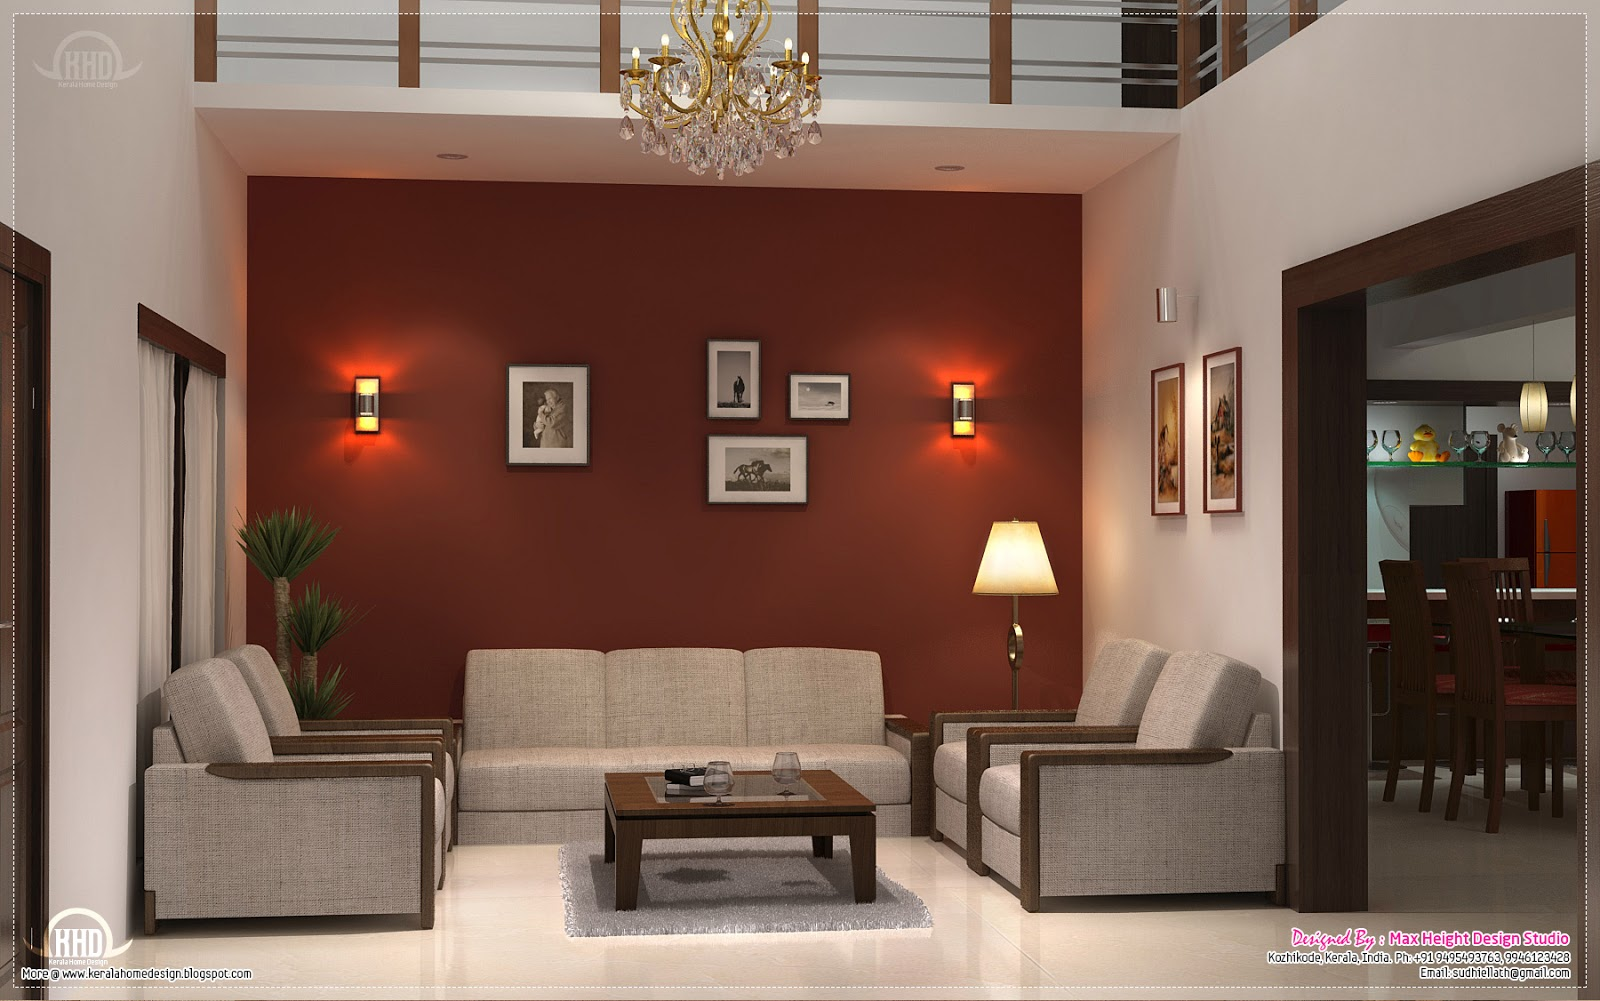 Home interior design ideas home kerala plans for Home interior design tips